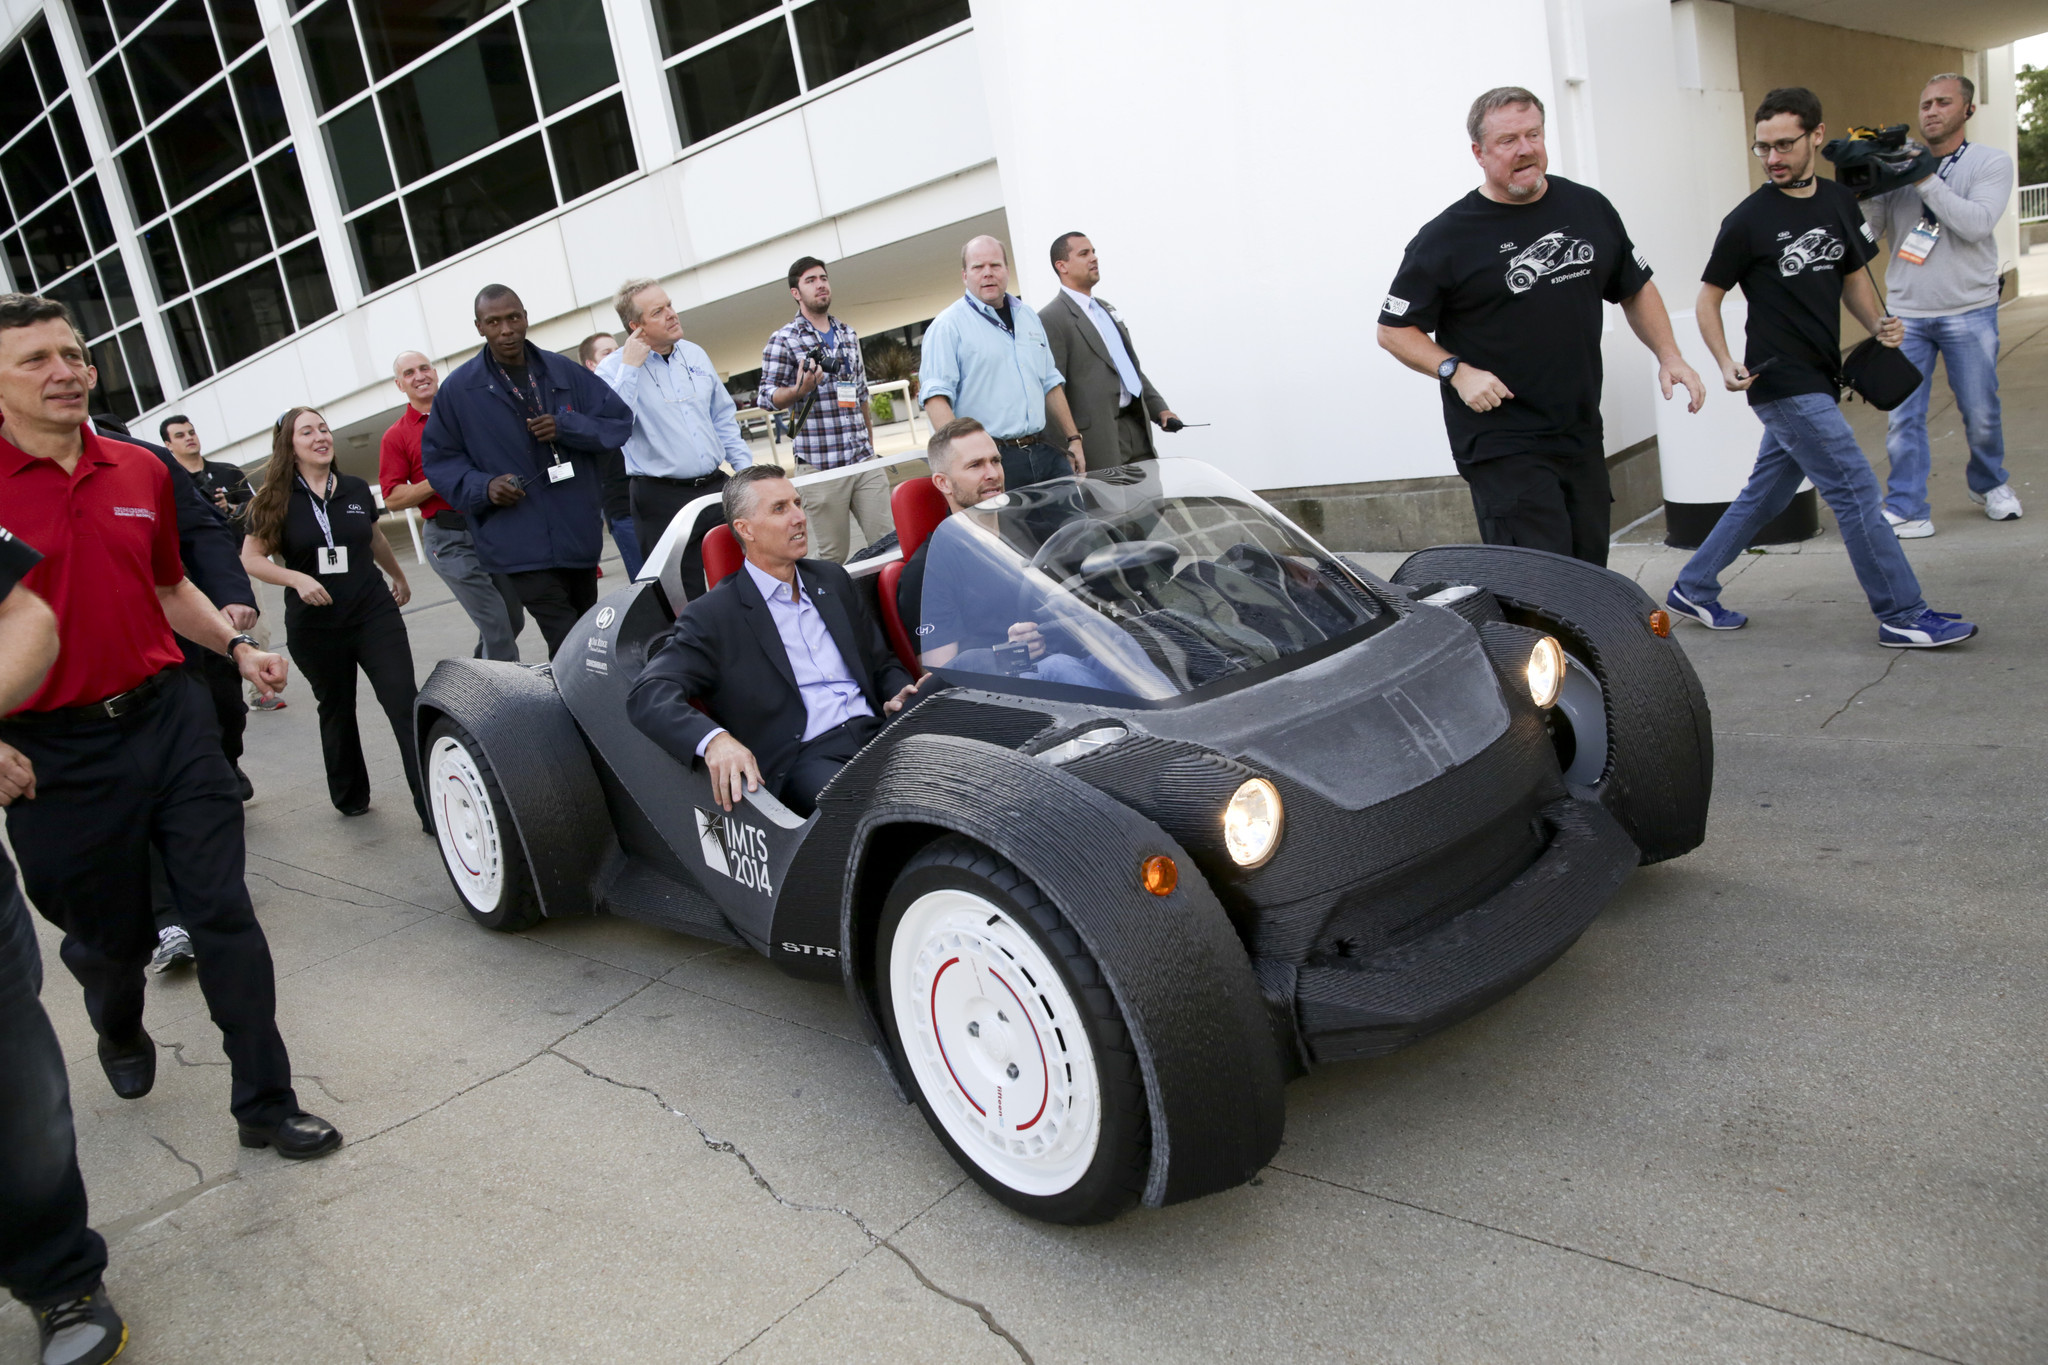 The World's First 3D Printed Car Unveiled at Detriot Motor Show